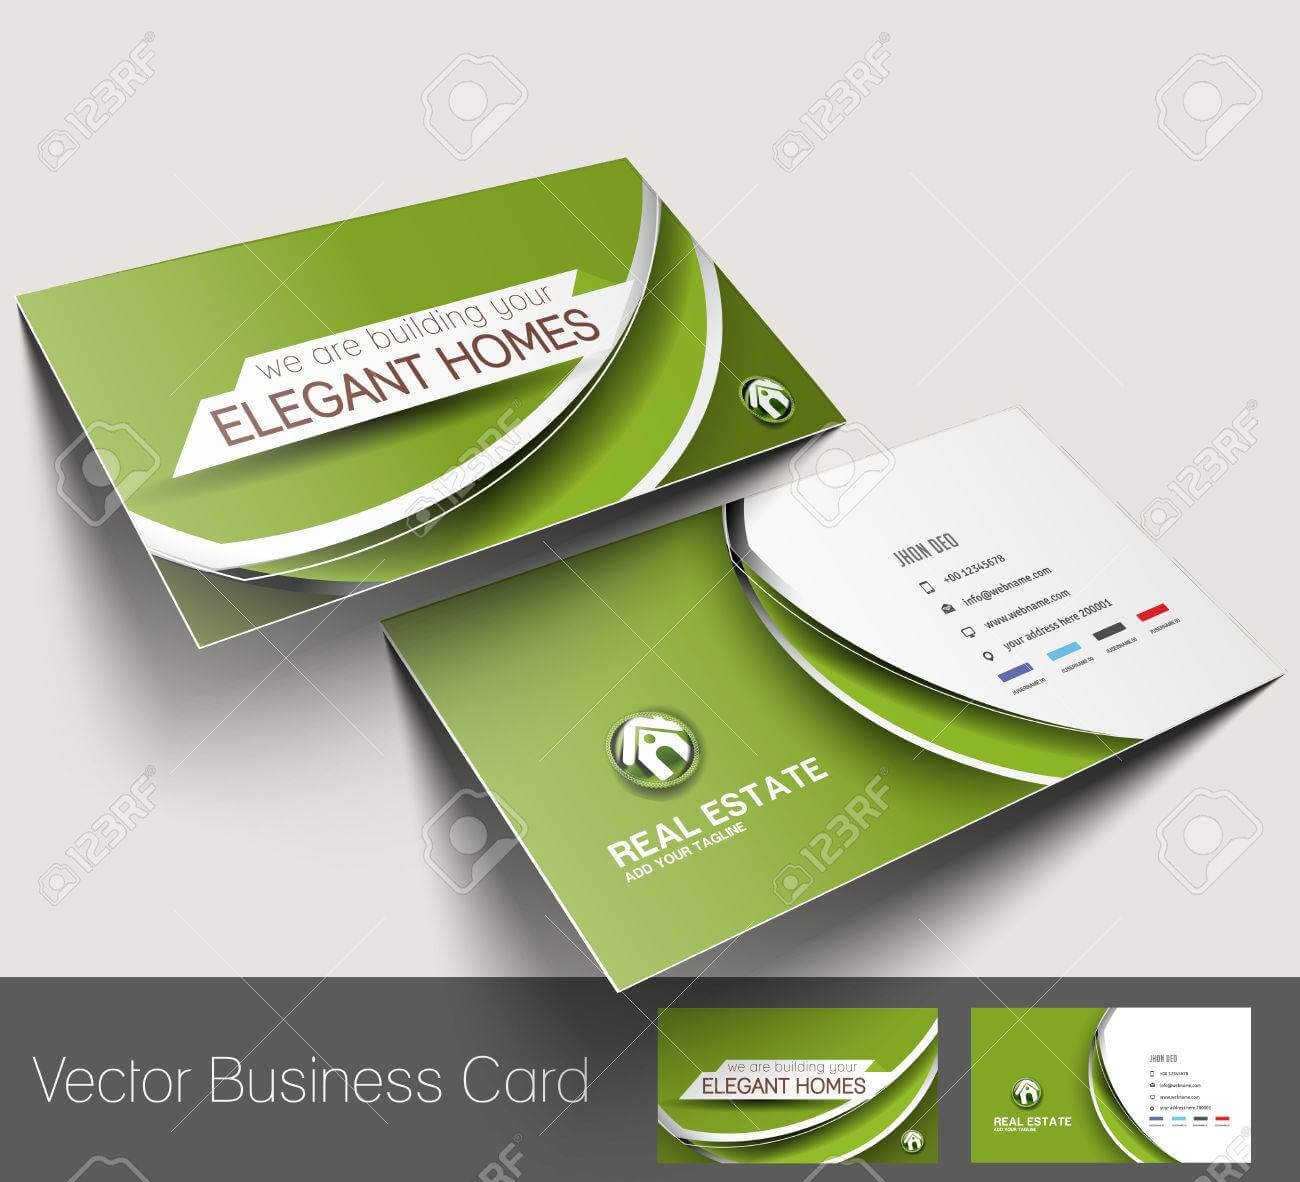 Real Estate Agent Business Card Set Template Pertaining To Real Estate Agent Business Card Template